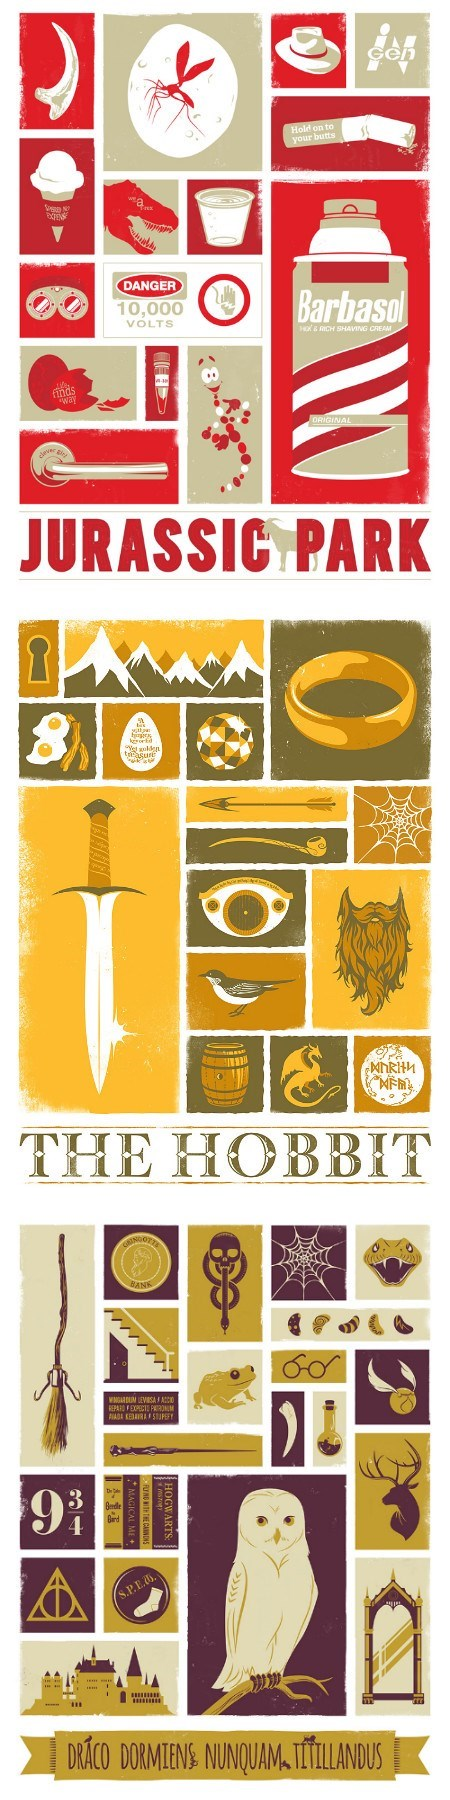 Harry Potter,Lord of the Rings,posters,jurassic park